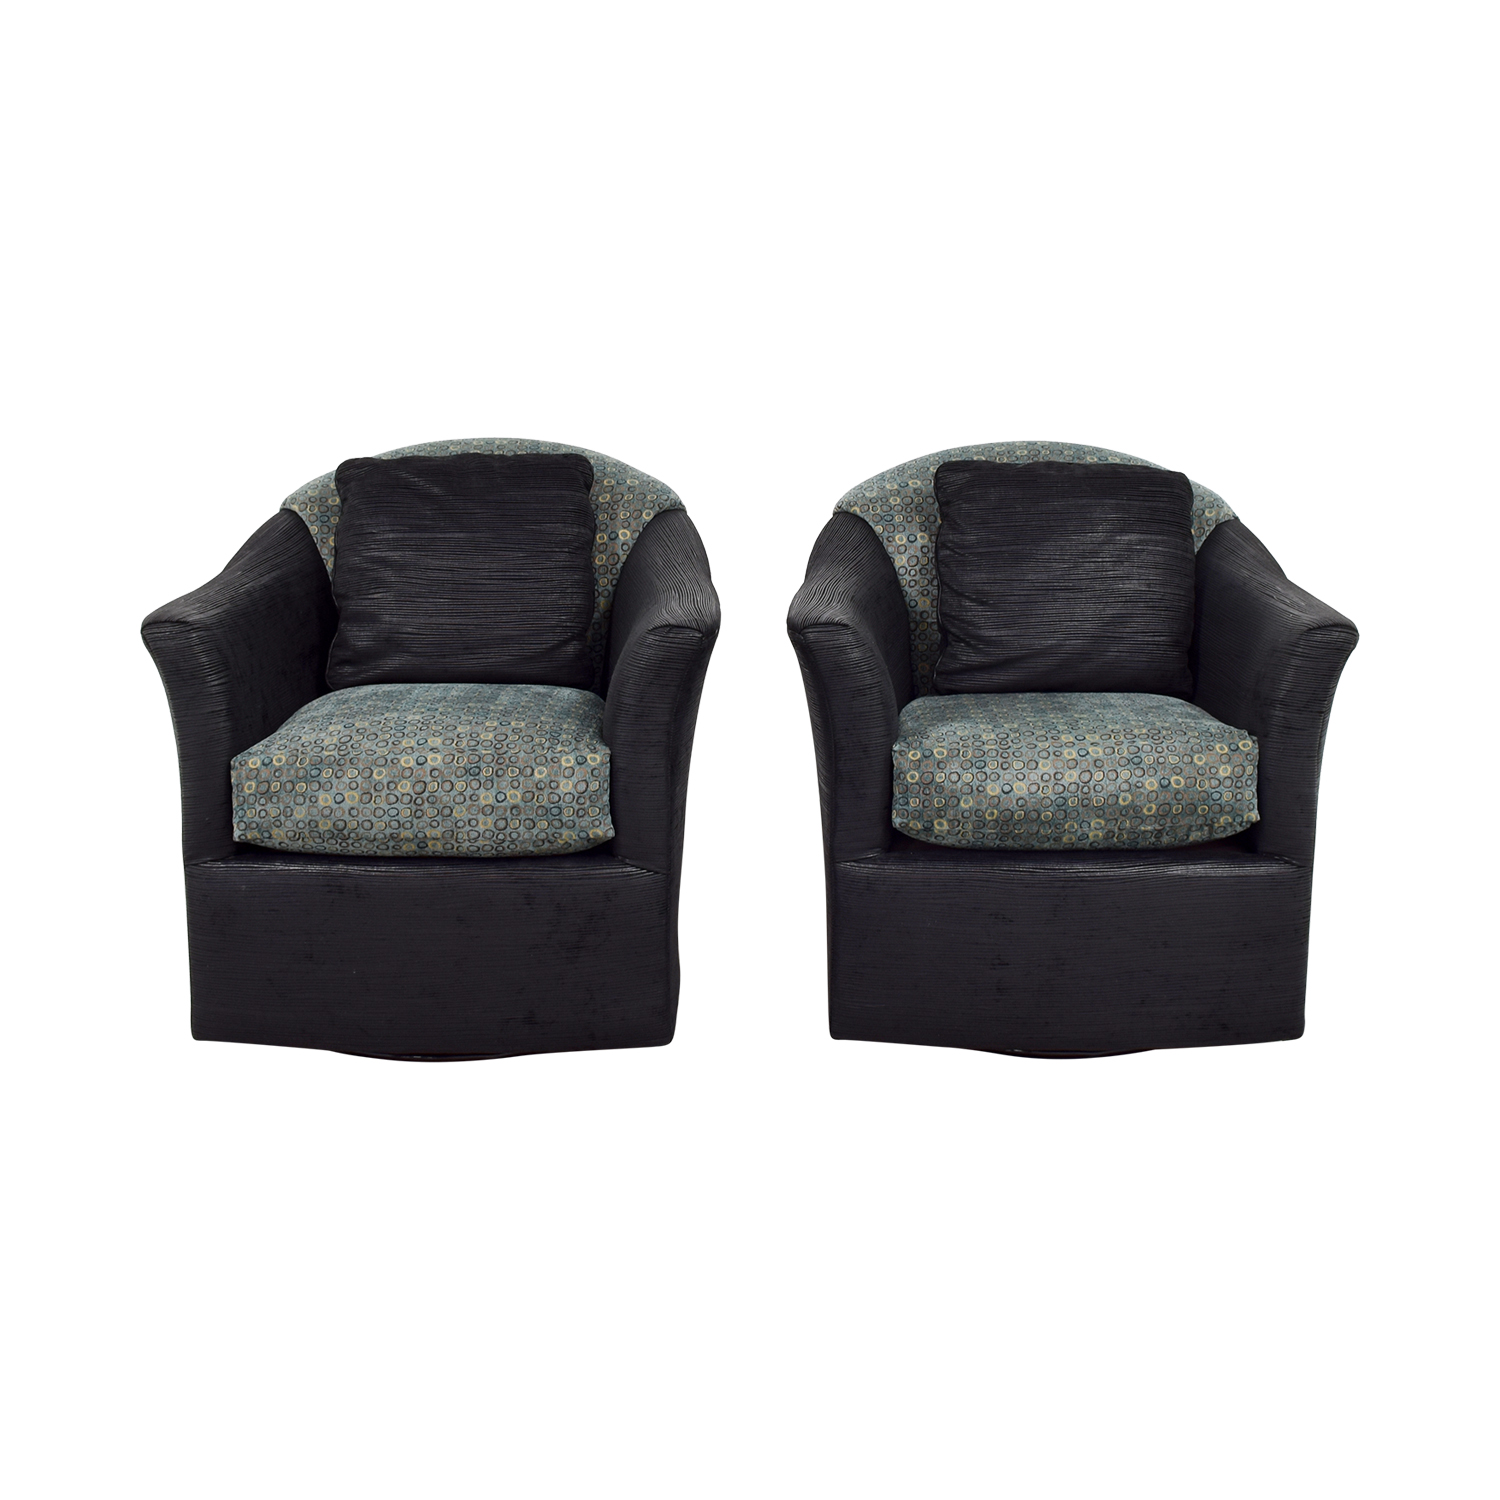 Gentil Fairfield Fairfield Barrel Black Blue And Gold Accent Chairs For Sale ...